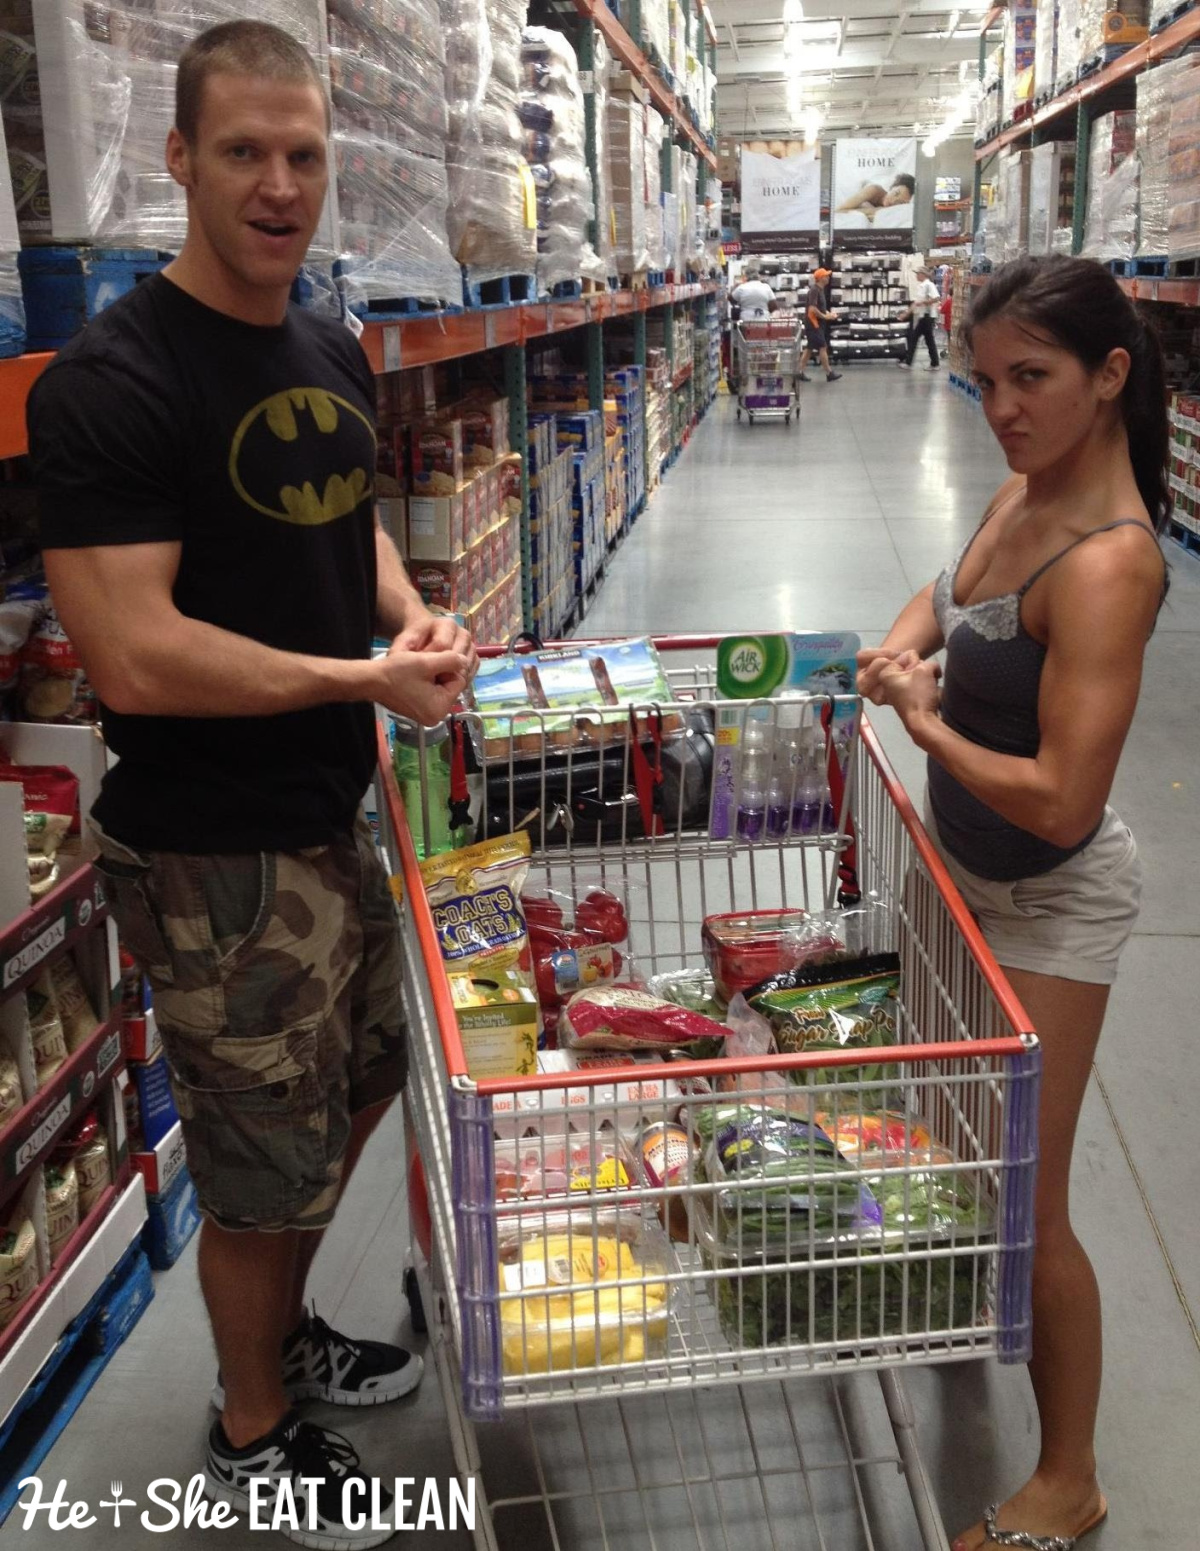 male and female standing next to a grocery cart flexing their muscles